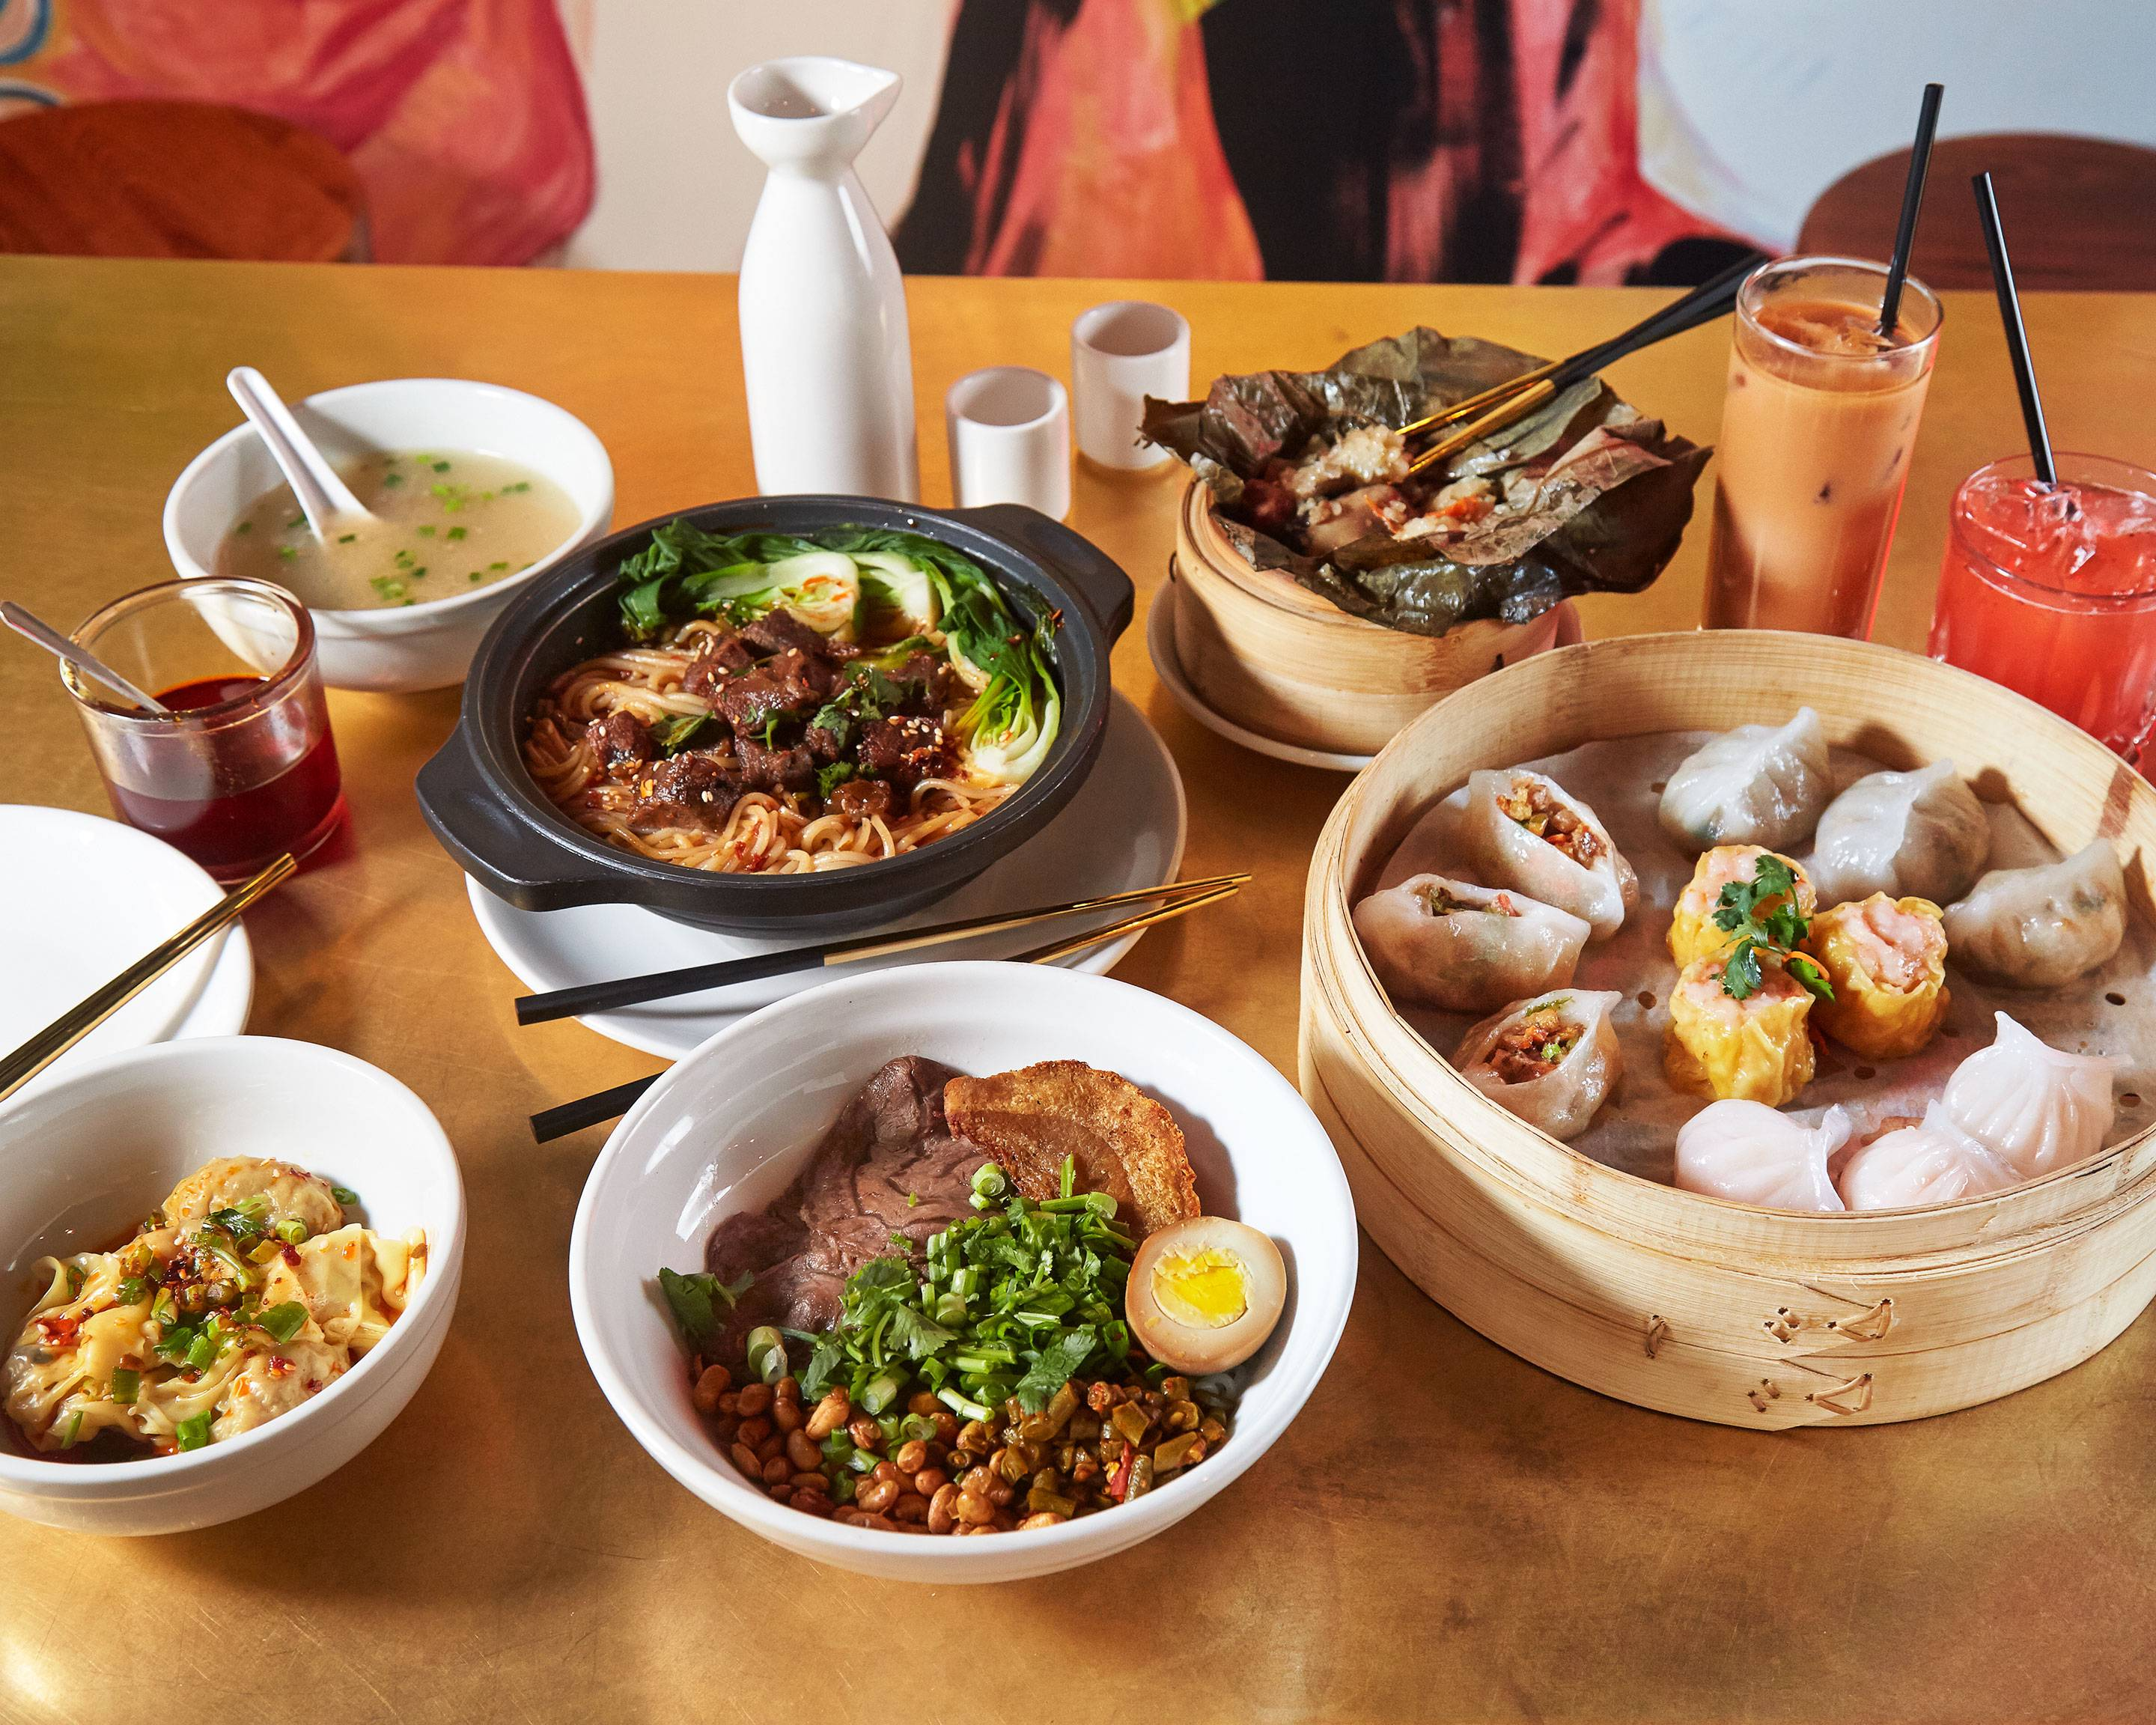 Order China Star Buffet Inc Delivery Online | NYC Suburbs ...